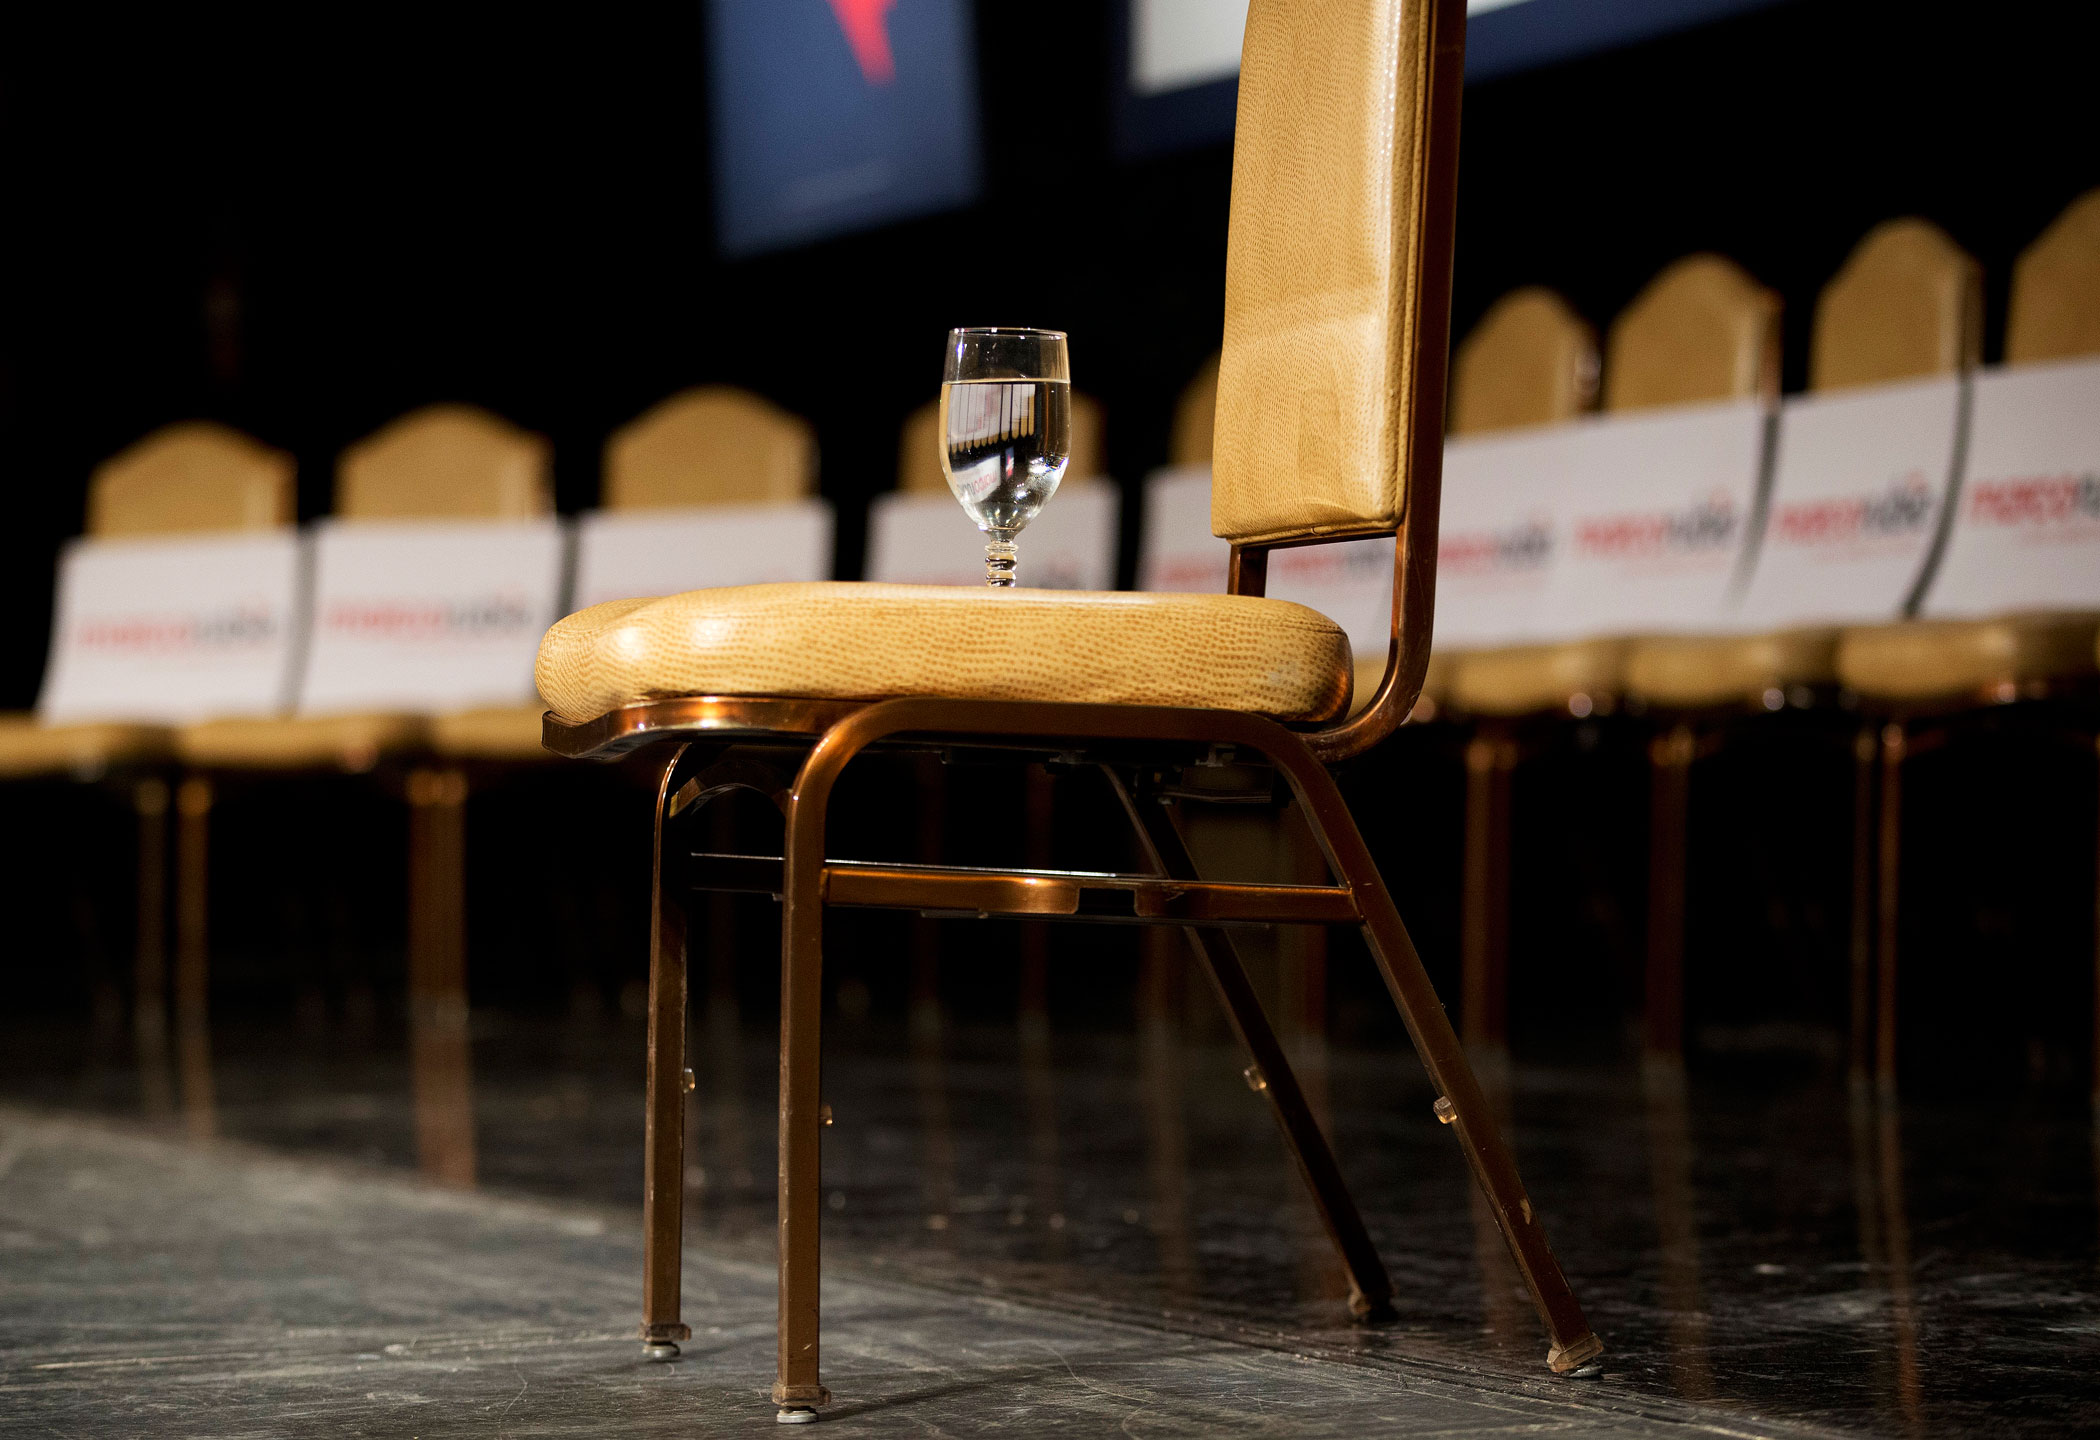 A glass of water for Florida Sen. Marco Rubio is placed on a chair at a rally on Feb. 21, 2016, in North Las Vegas.